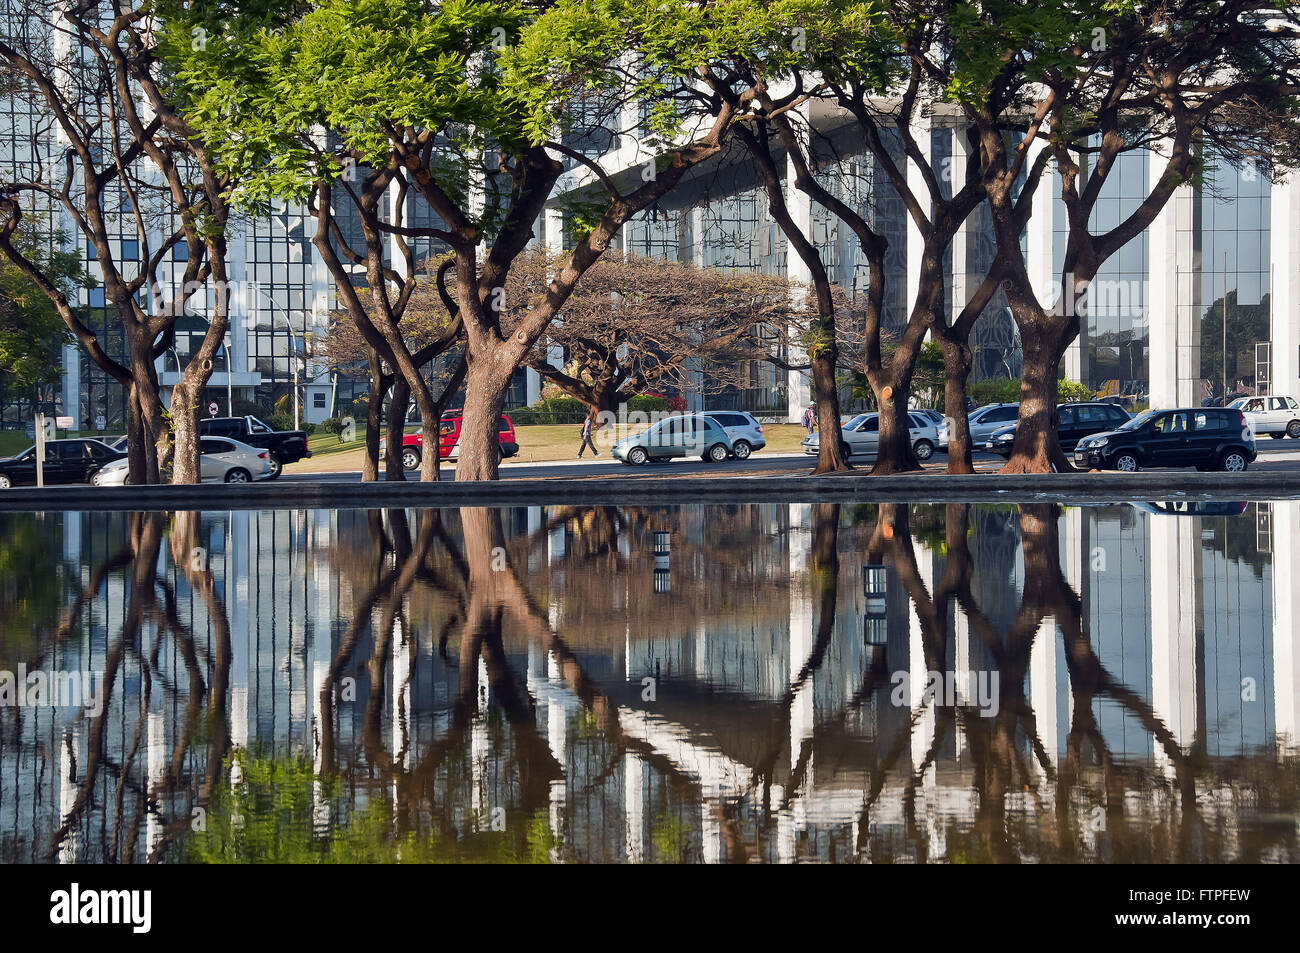 Reflection of trees in the artificial lake of the Praca do Buriti and vehicle traffic - Stock Image